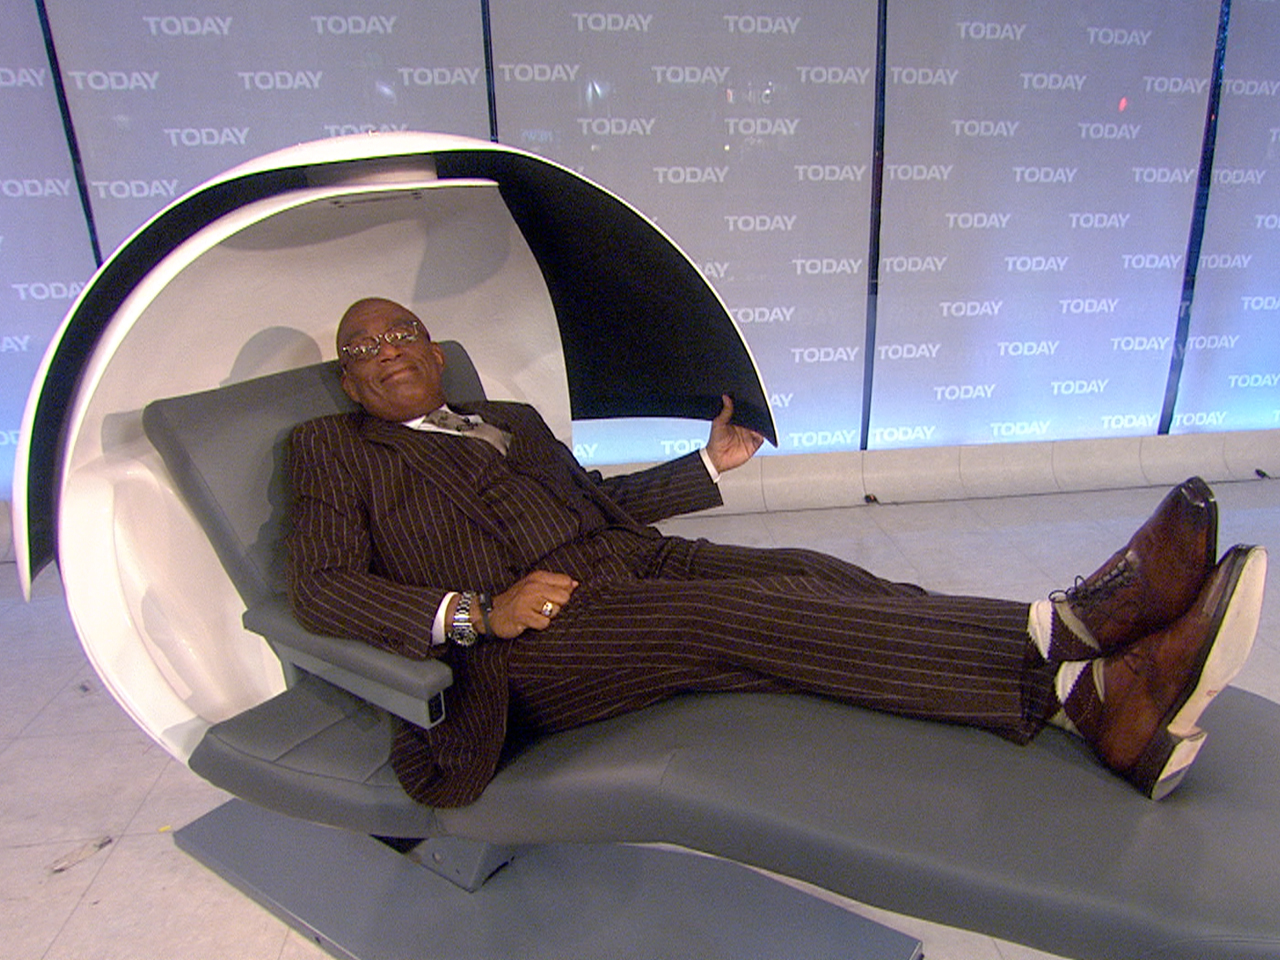 Nap Rooms Encourage Sleeping On The Job To Boost